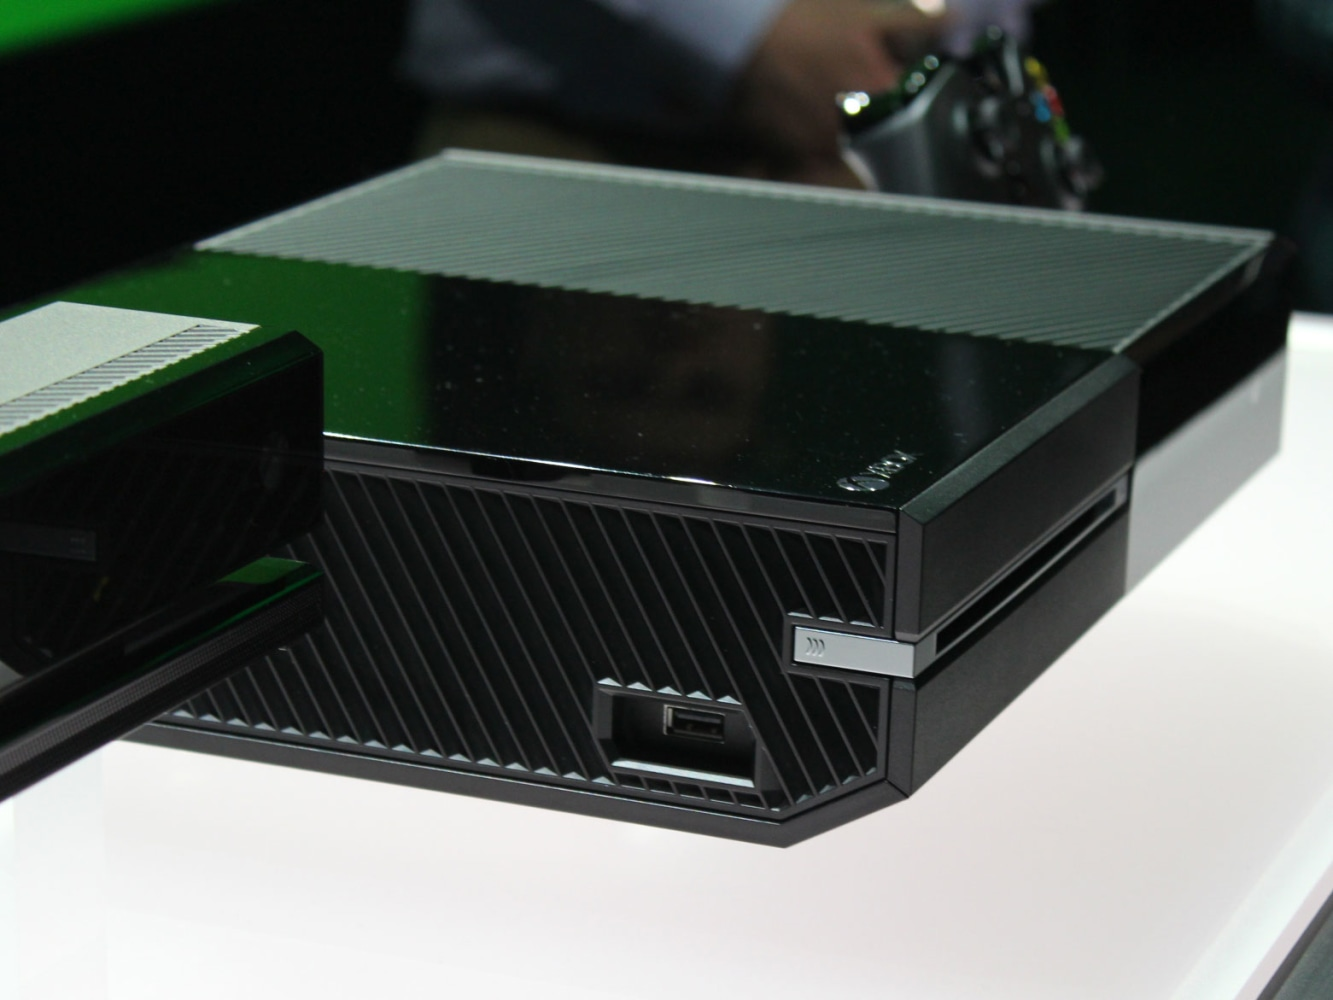 Microsoft reveals Xbox One, the 'new generation' console